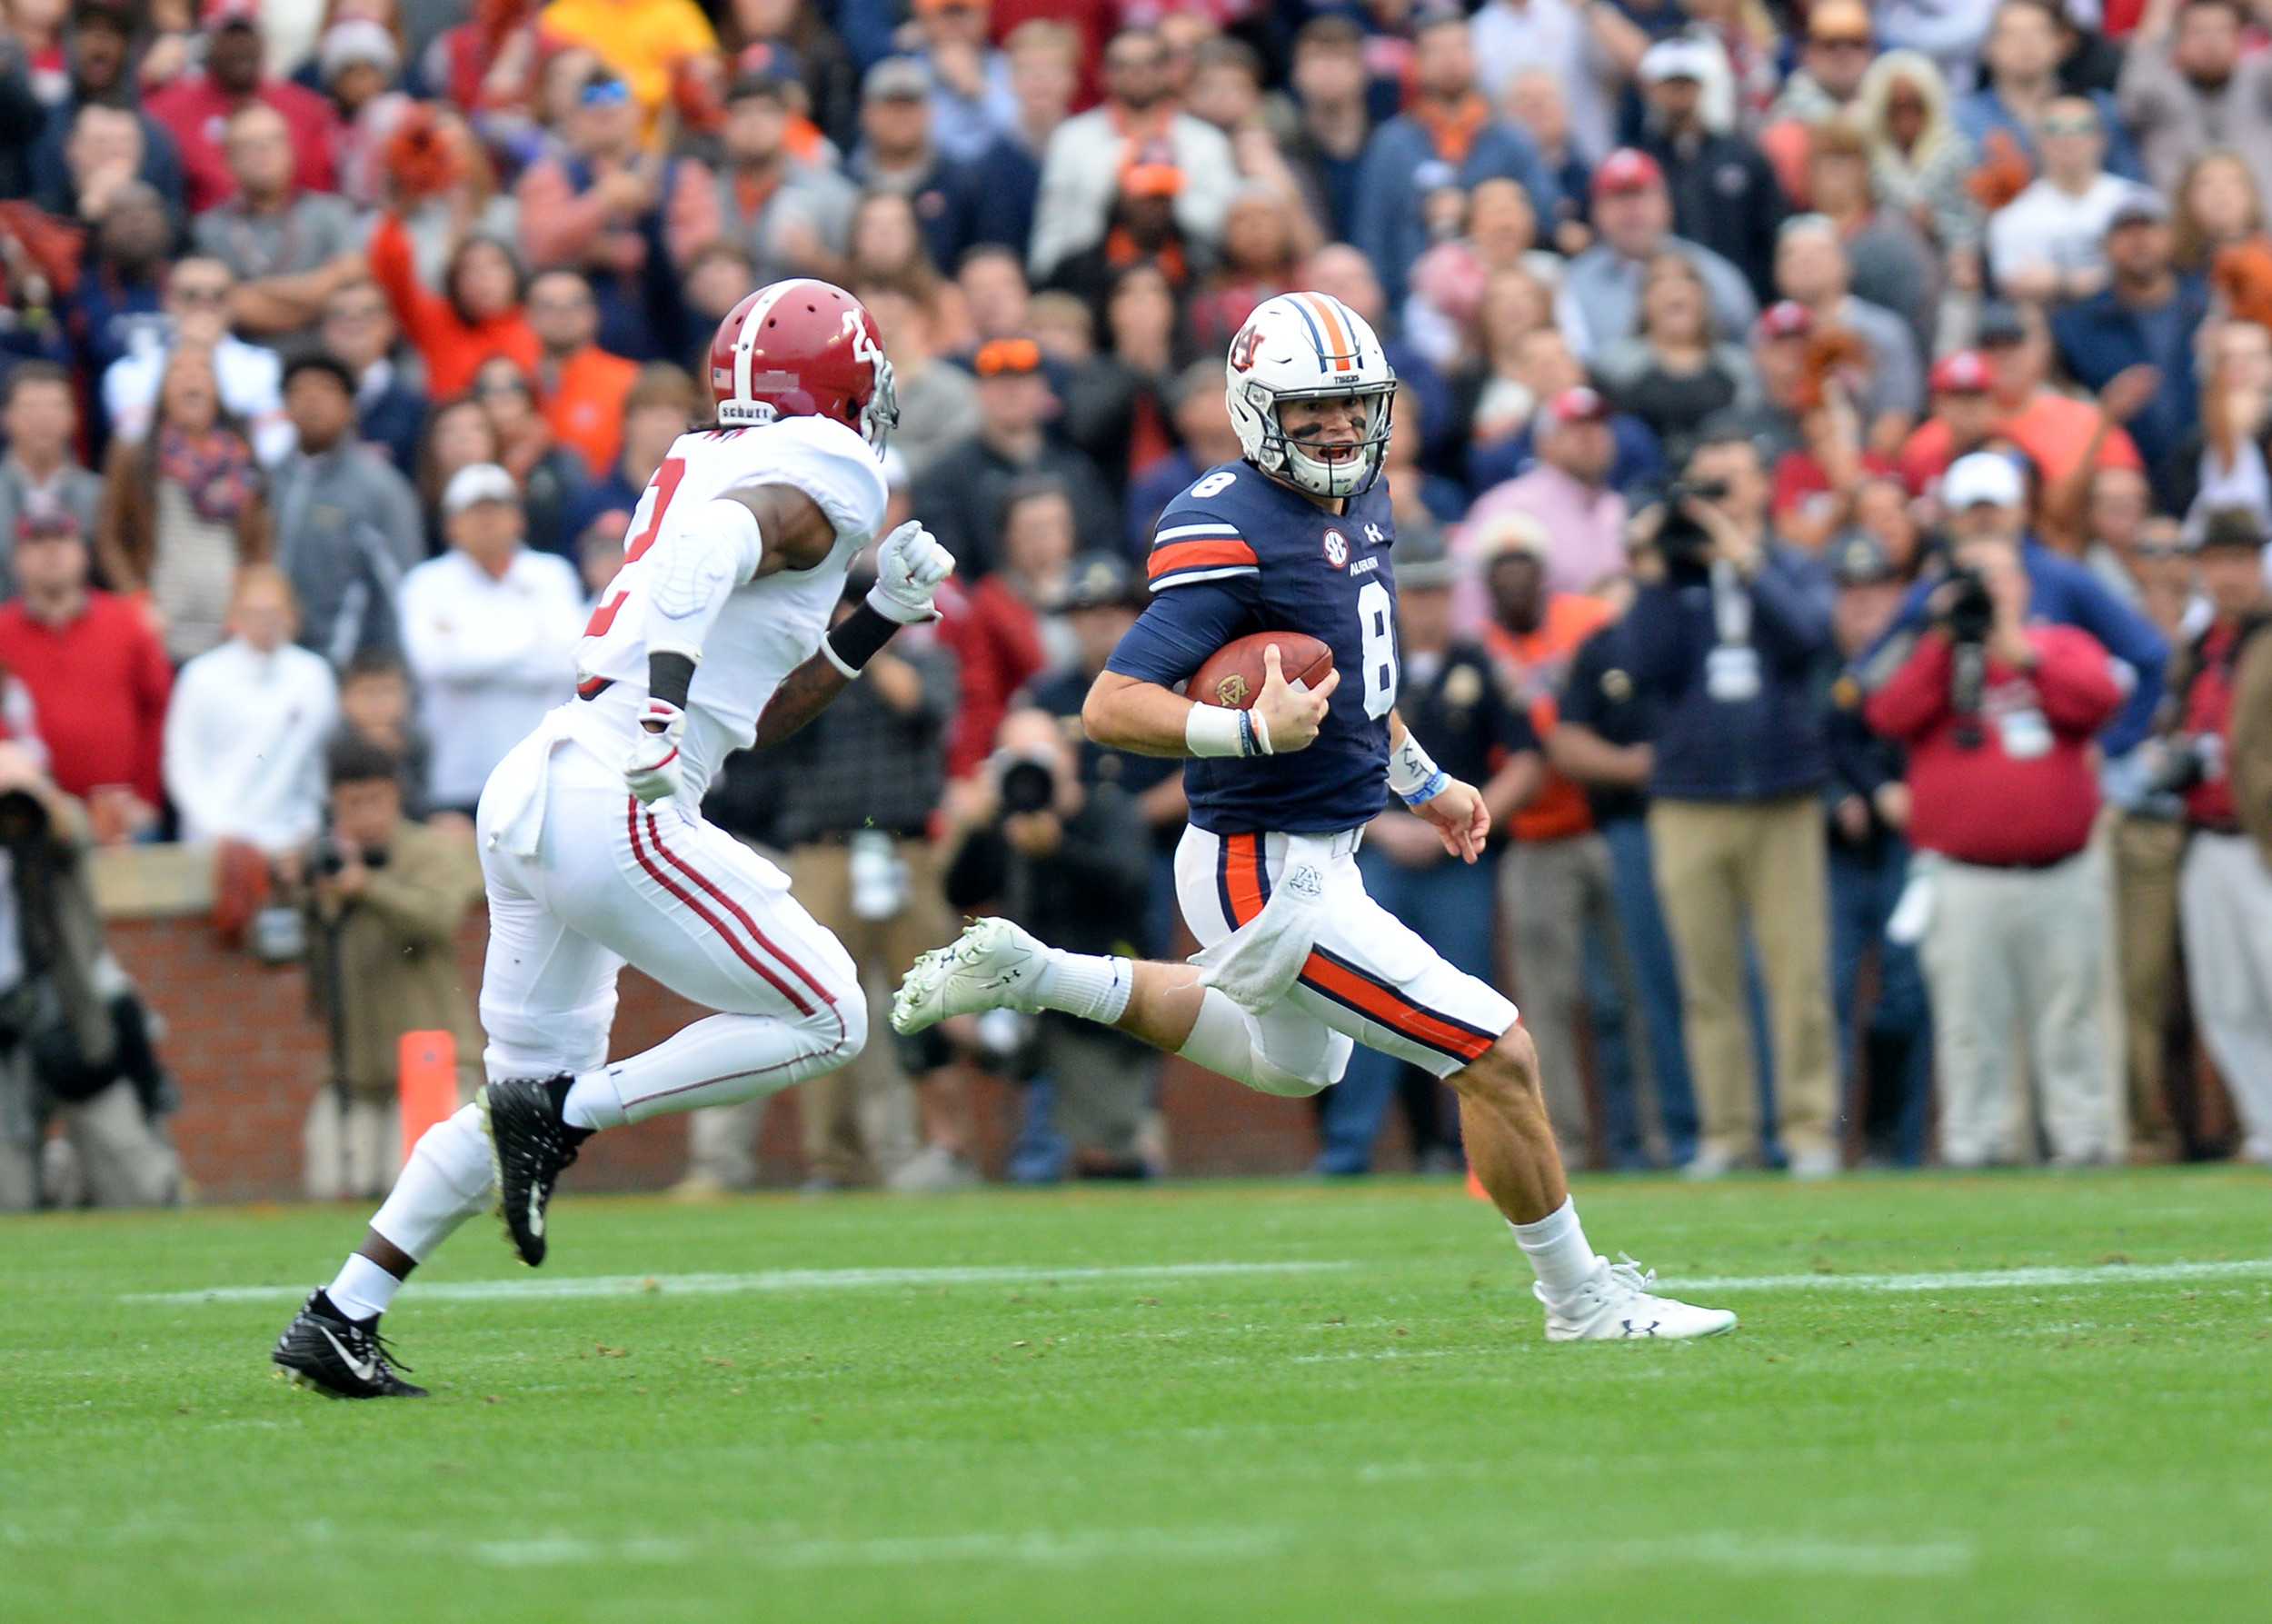 Auburn Tigers quarterback Jarrett Stidham (8) with a keeper in the first half of the NCAA football game between the Alabama Crimson Tide and the Auburn Tigers on Nov. 25, 2017, at Jordan-Hare Stadium in Auburn, Ala. (Photo by Jeff Johnsey)